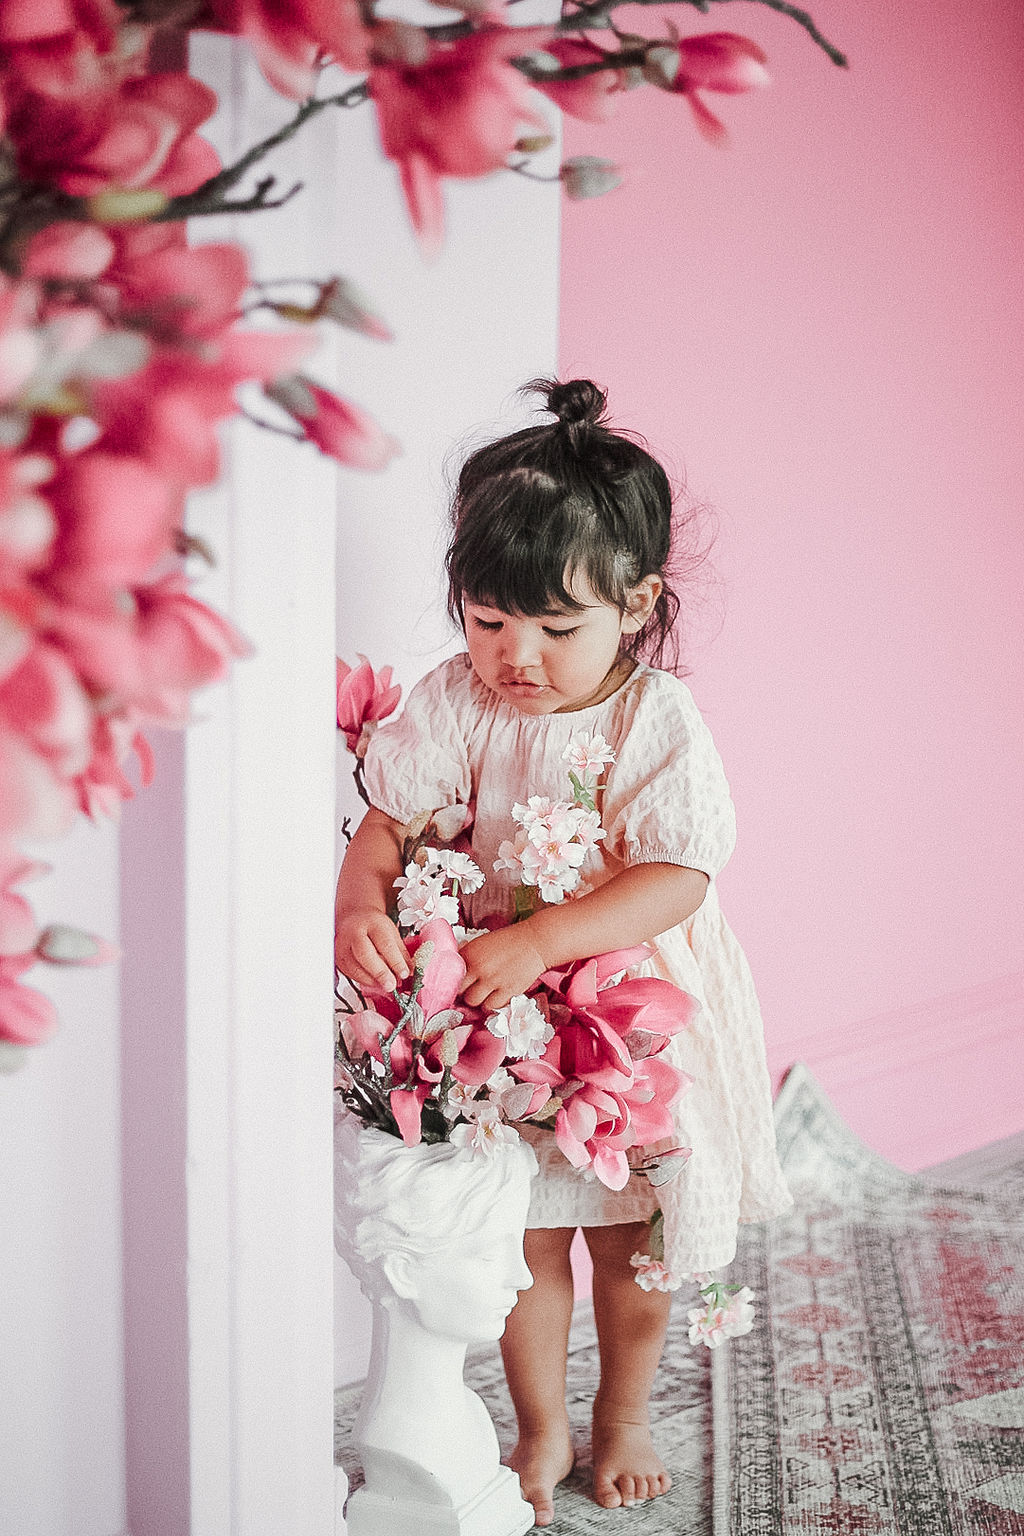 little girl picking flower decorations from a white face vase in a pink studio